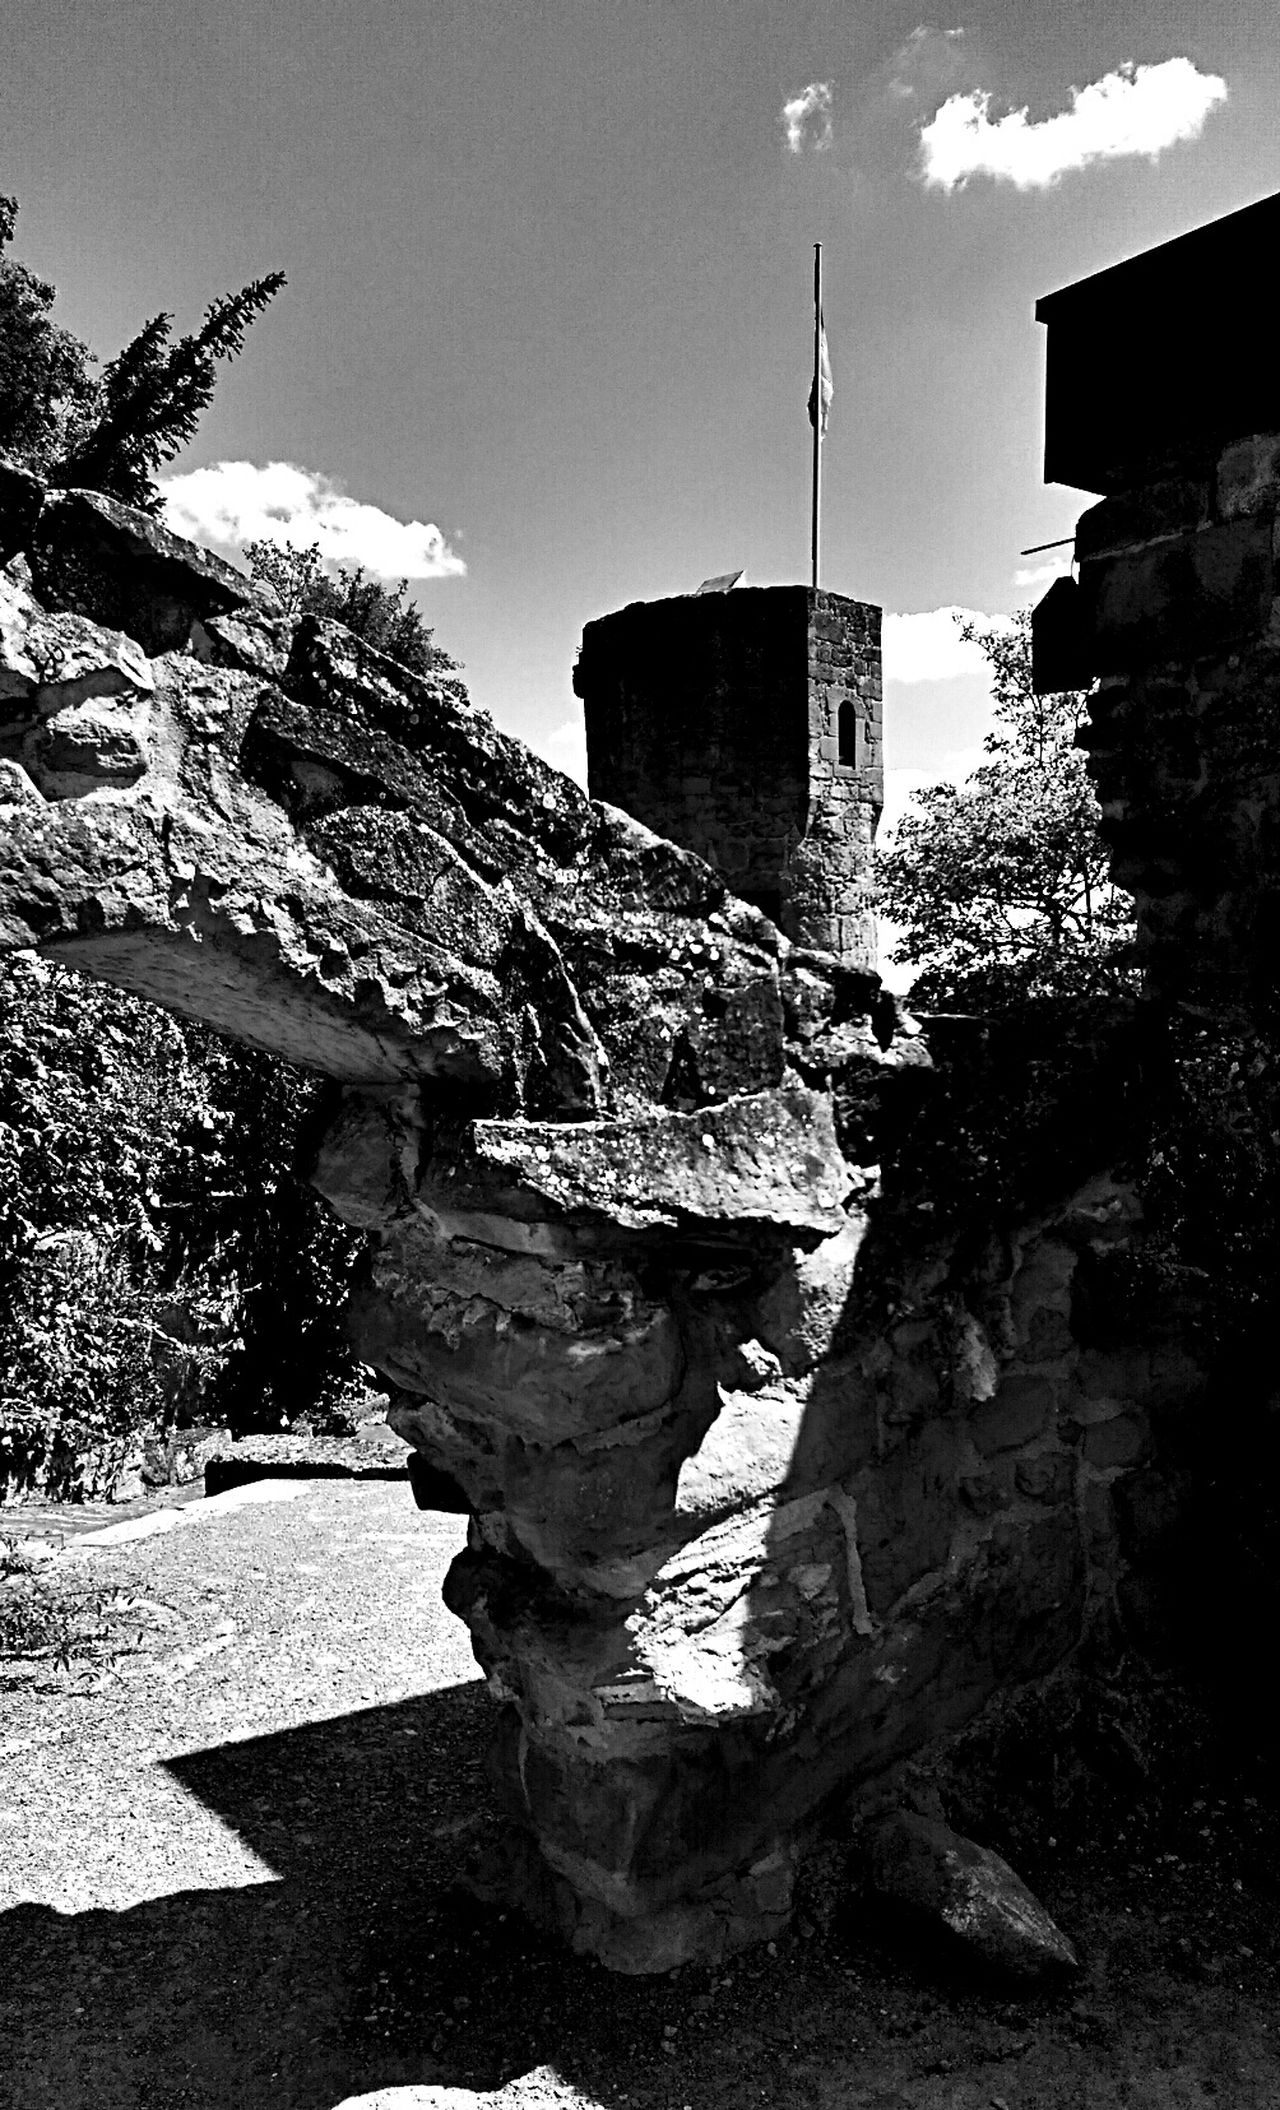 Fantastic Exhibition Historical Building Ruins Blackandwhite Black And White Traveling